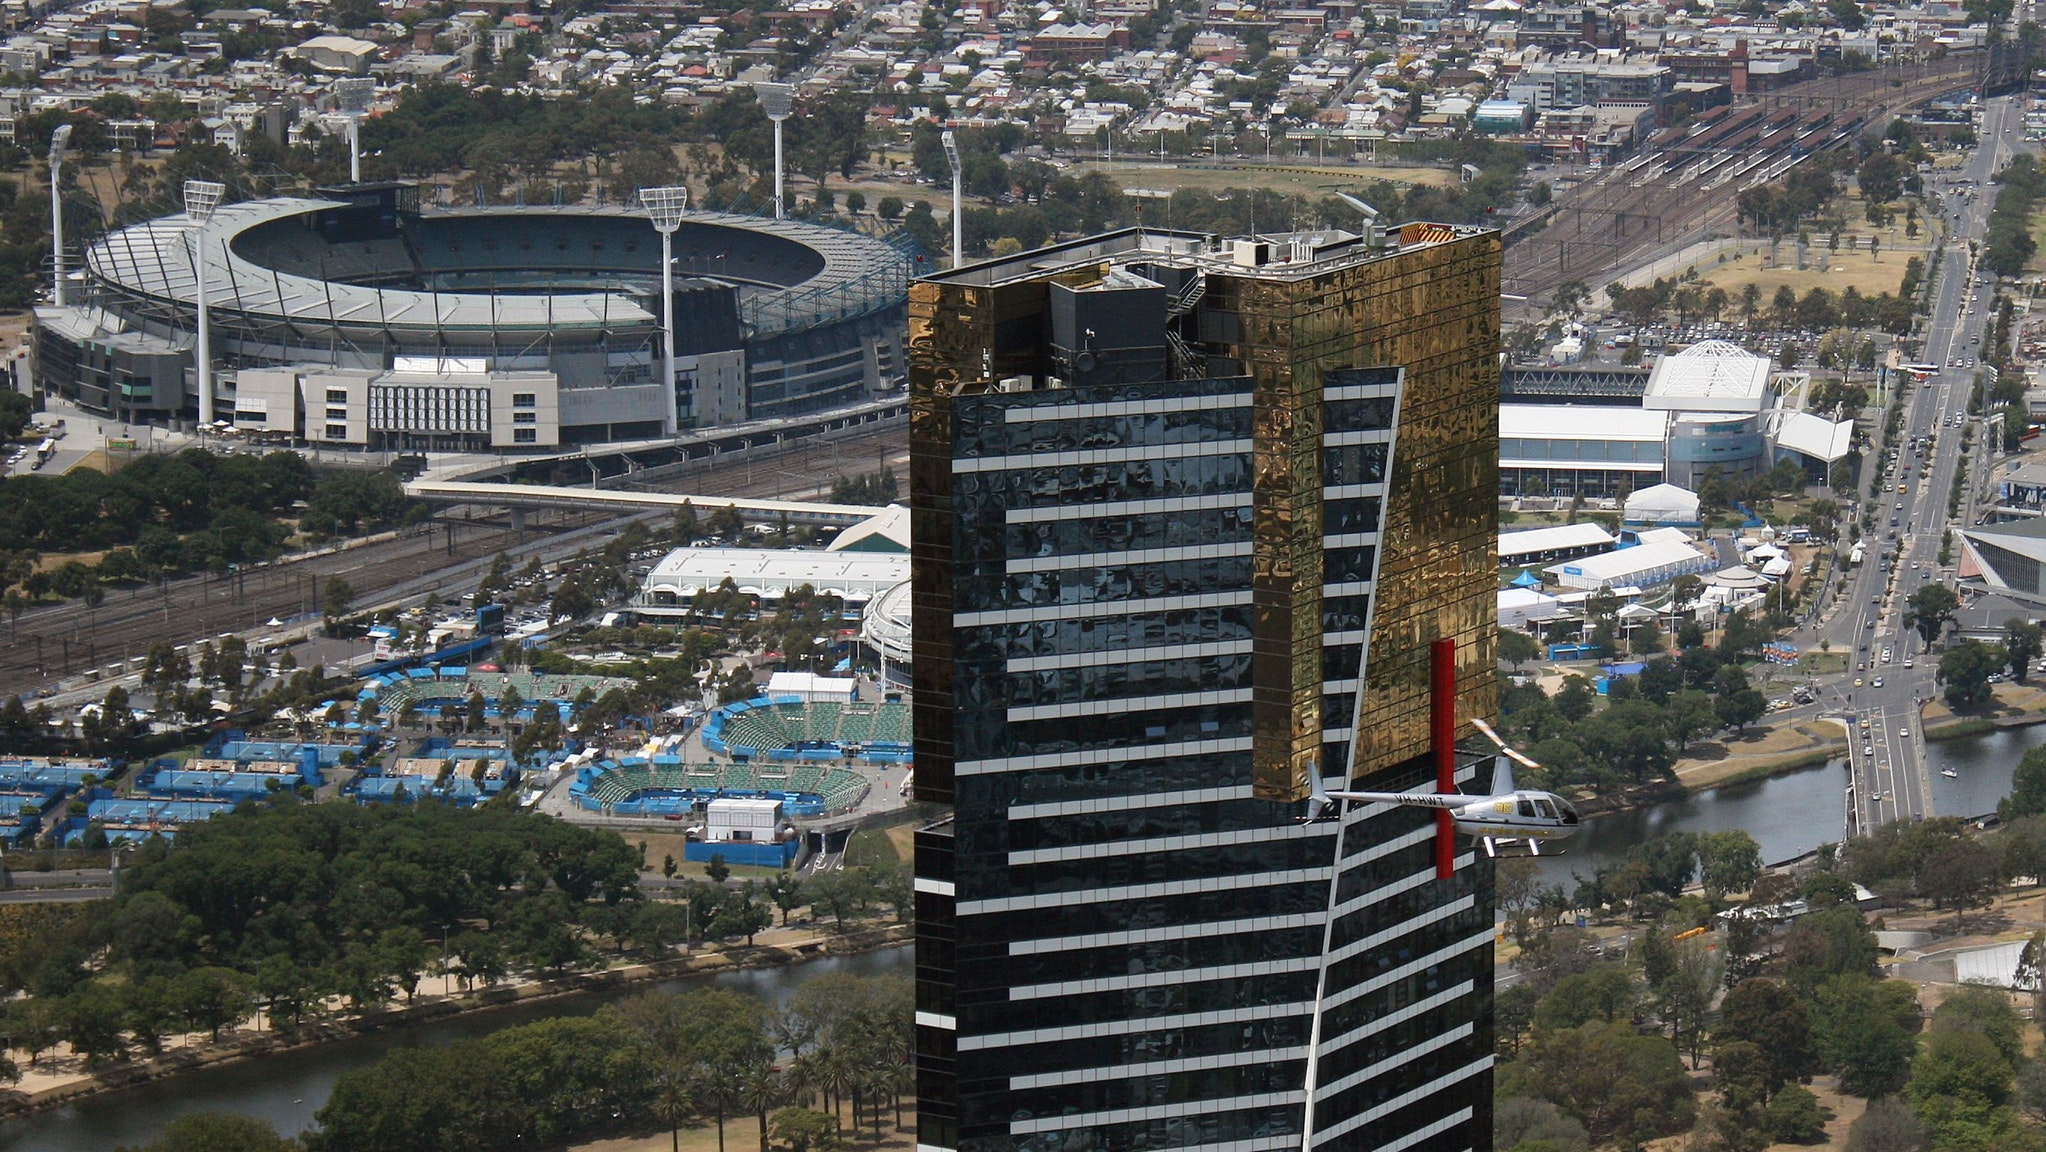 mcg and eureka seen from helicopter